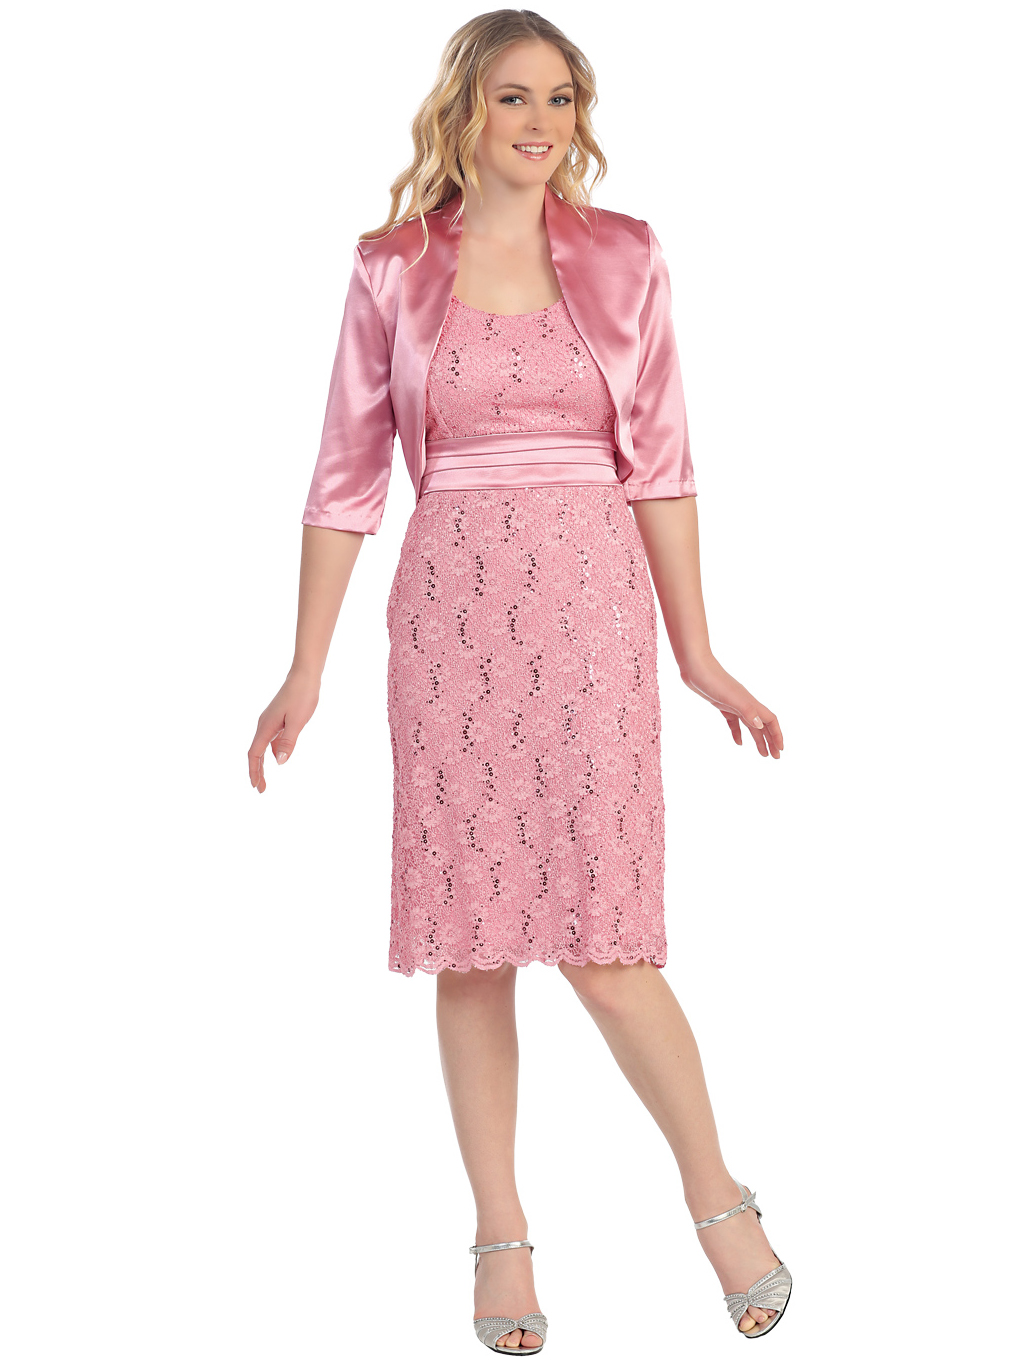 Lace Amp Sweetheart Cocktail Dress With Satin Bolero Sung